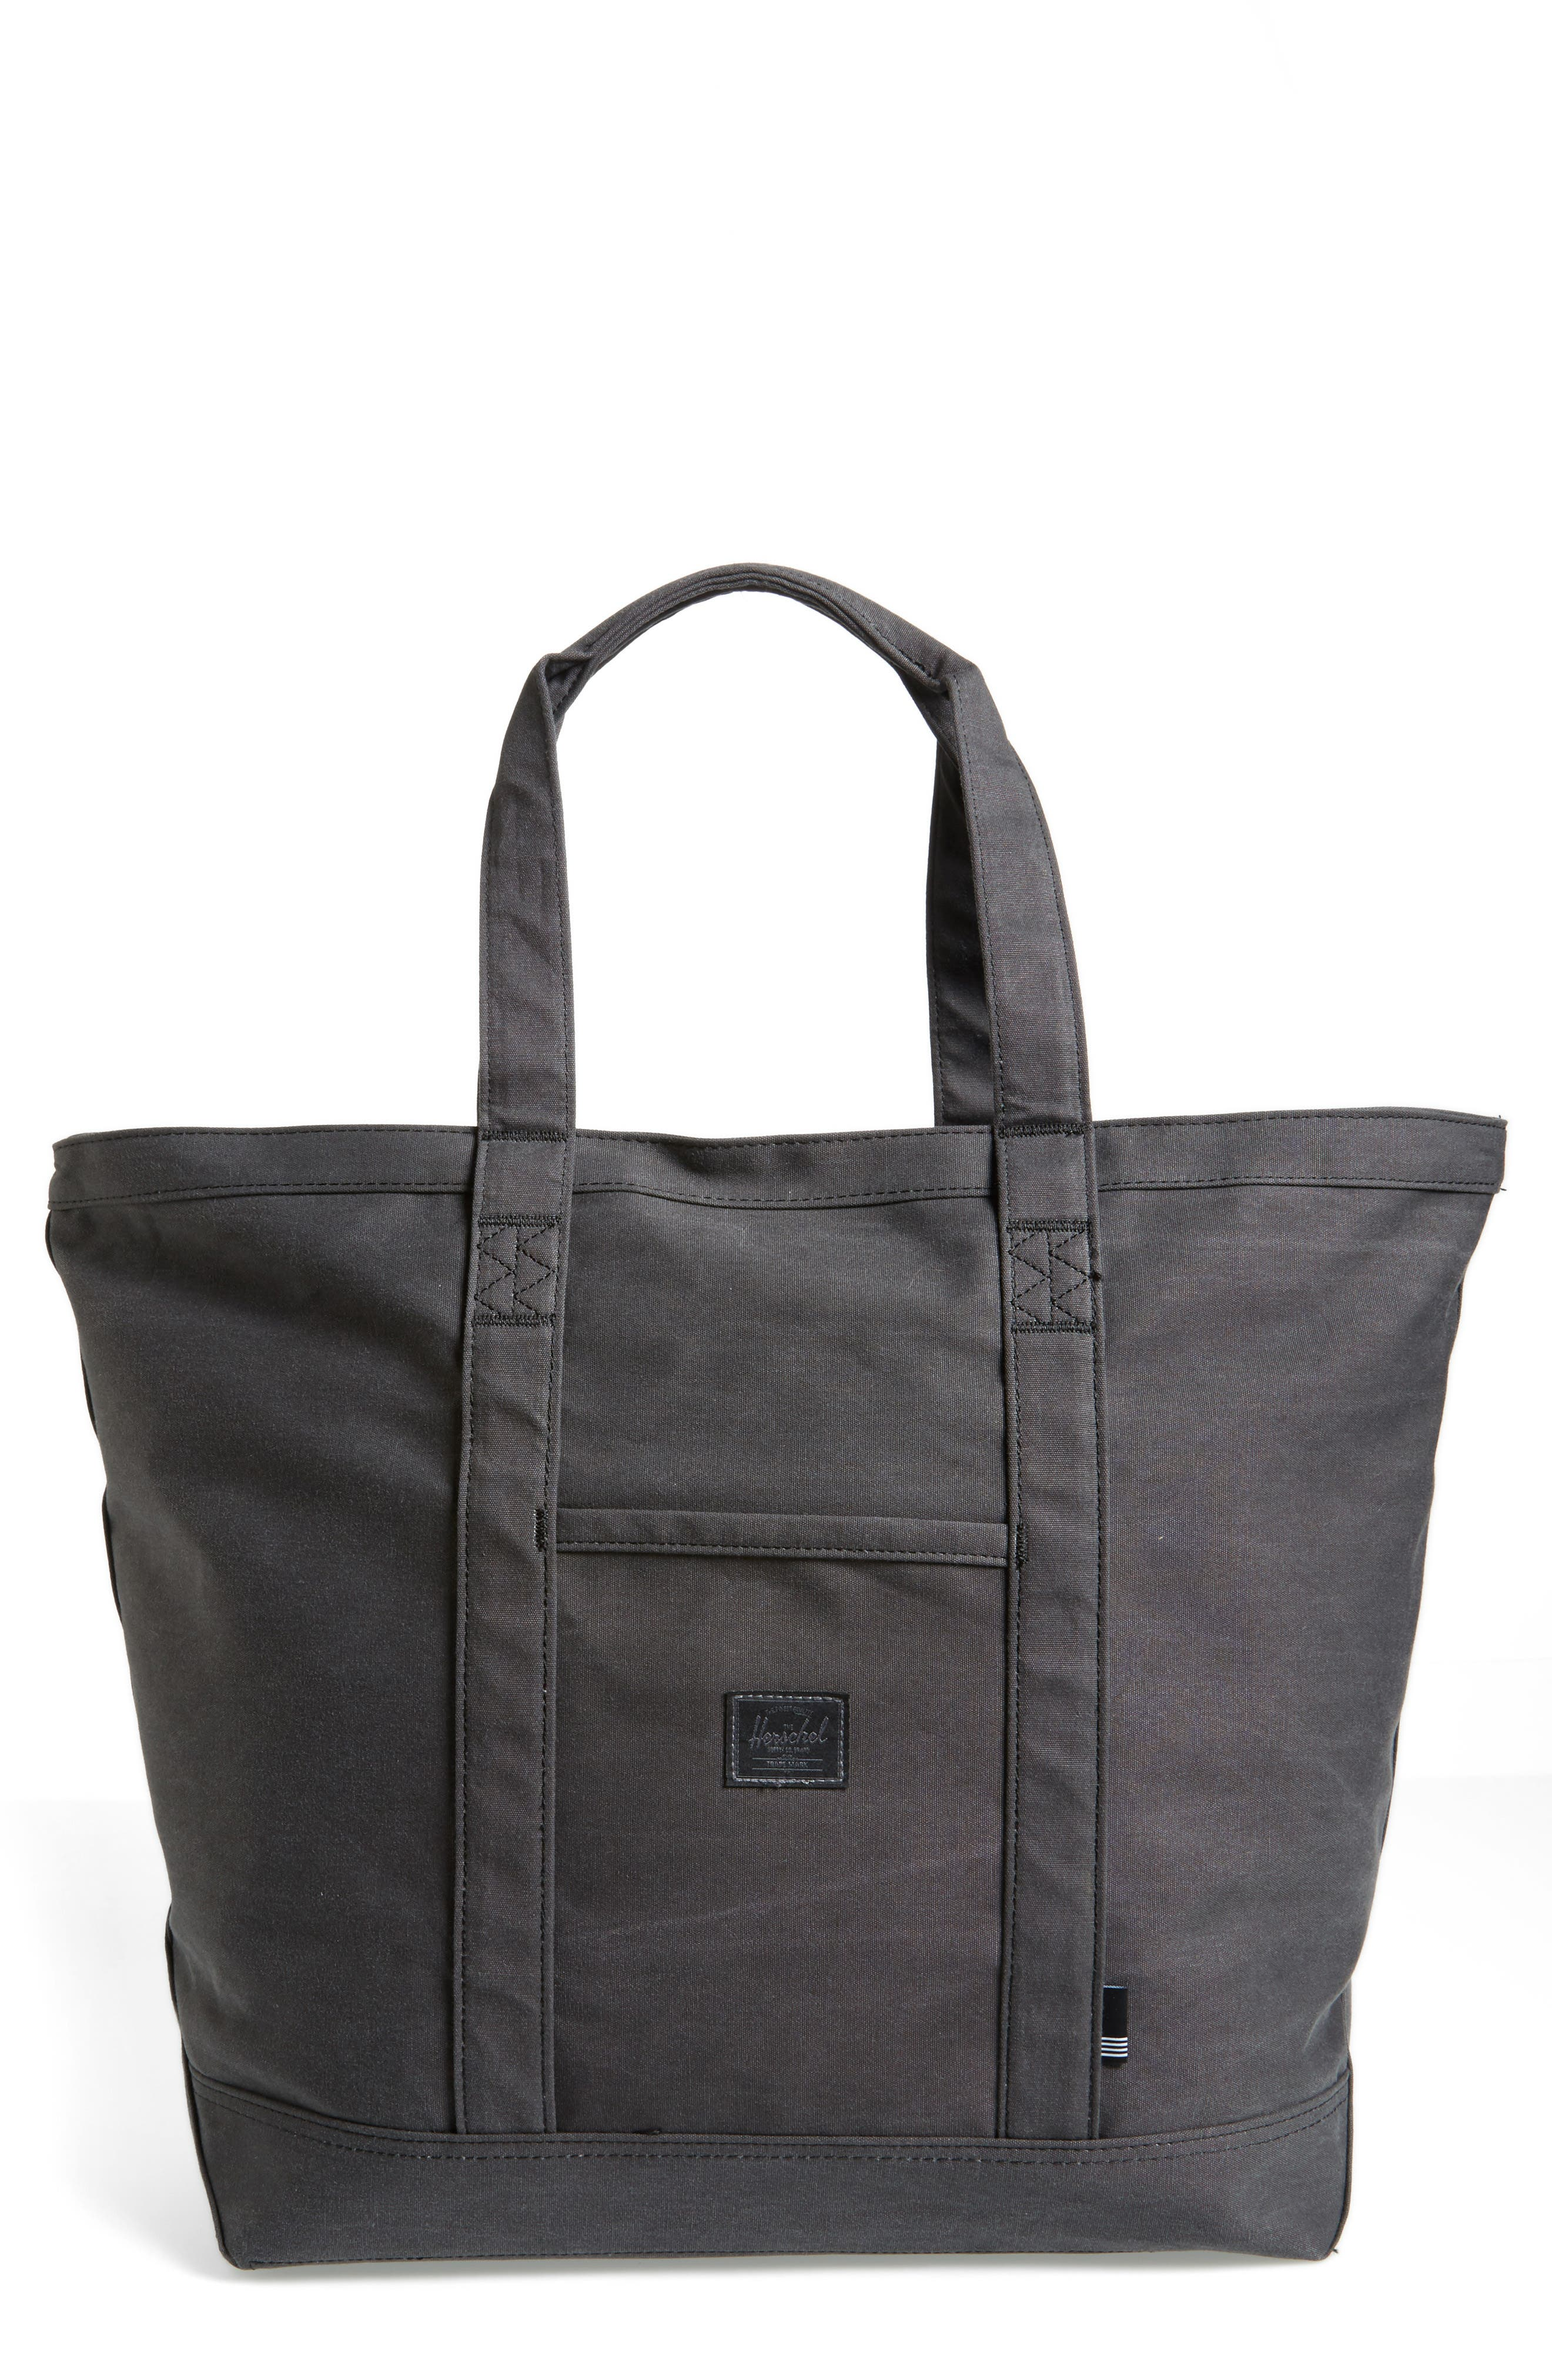 Bamfield Tote Bag,                             Main thumbnail 1, color,                             Black